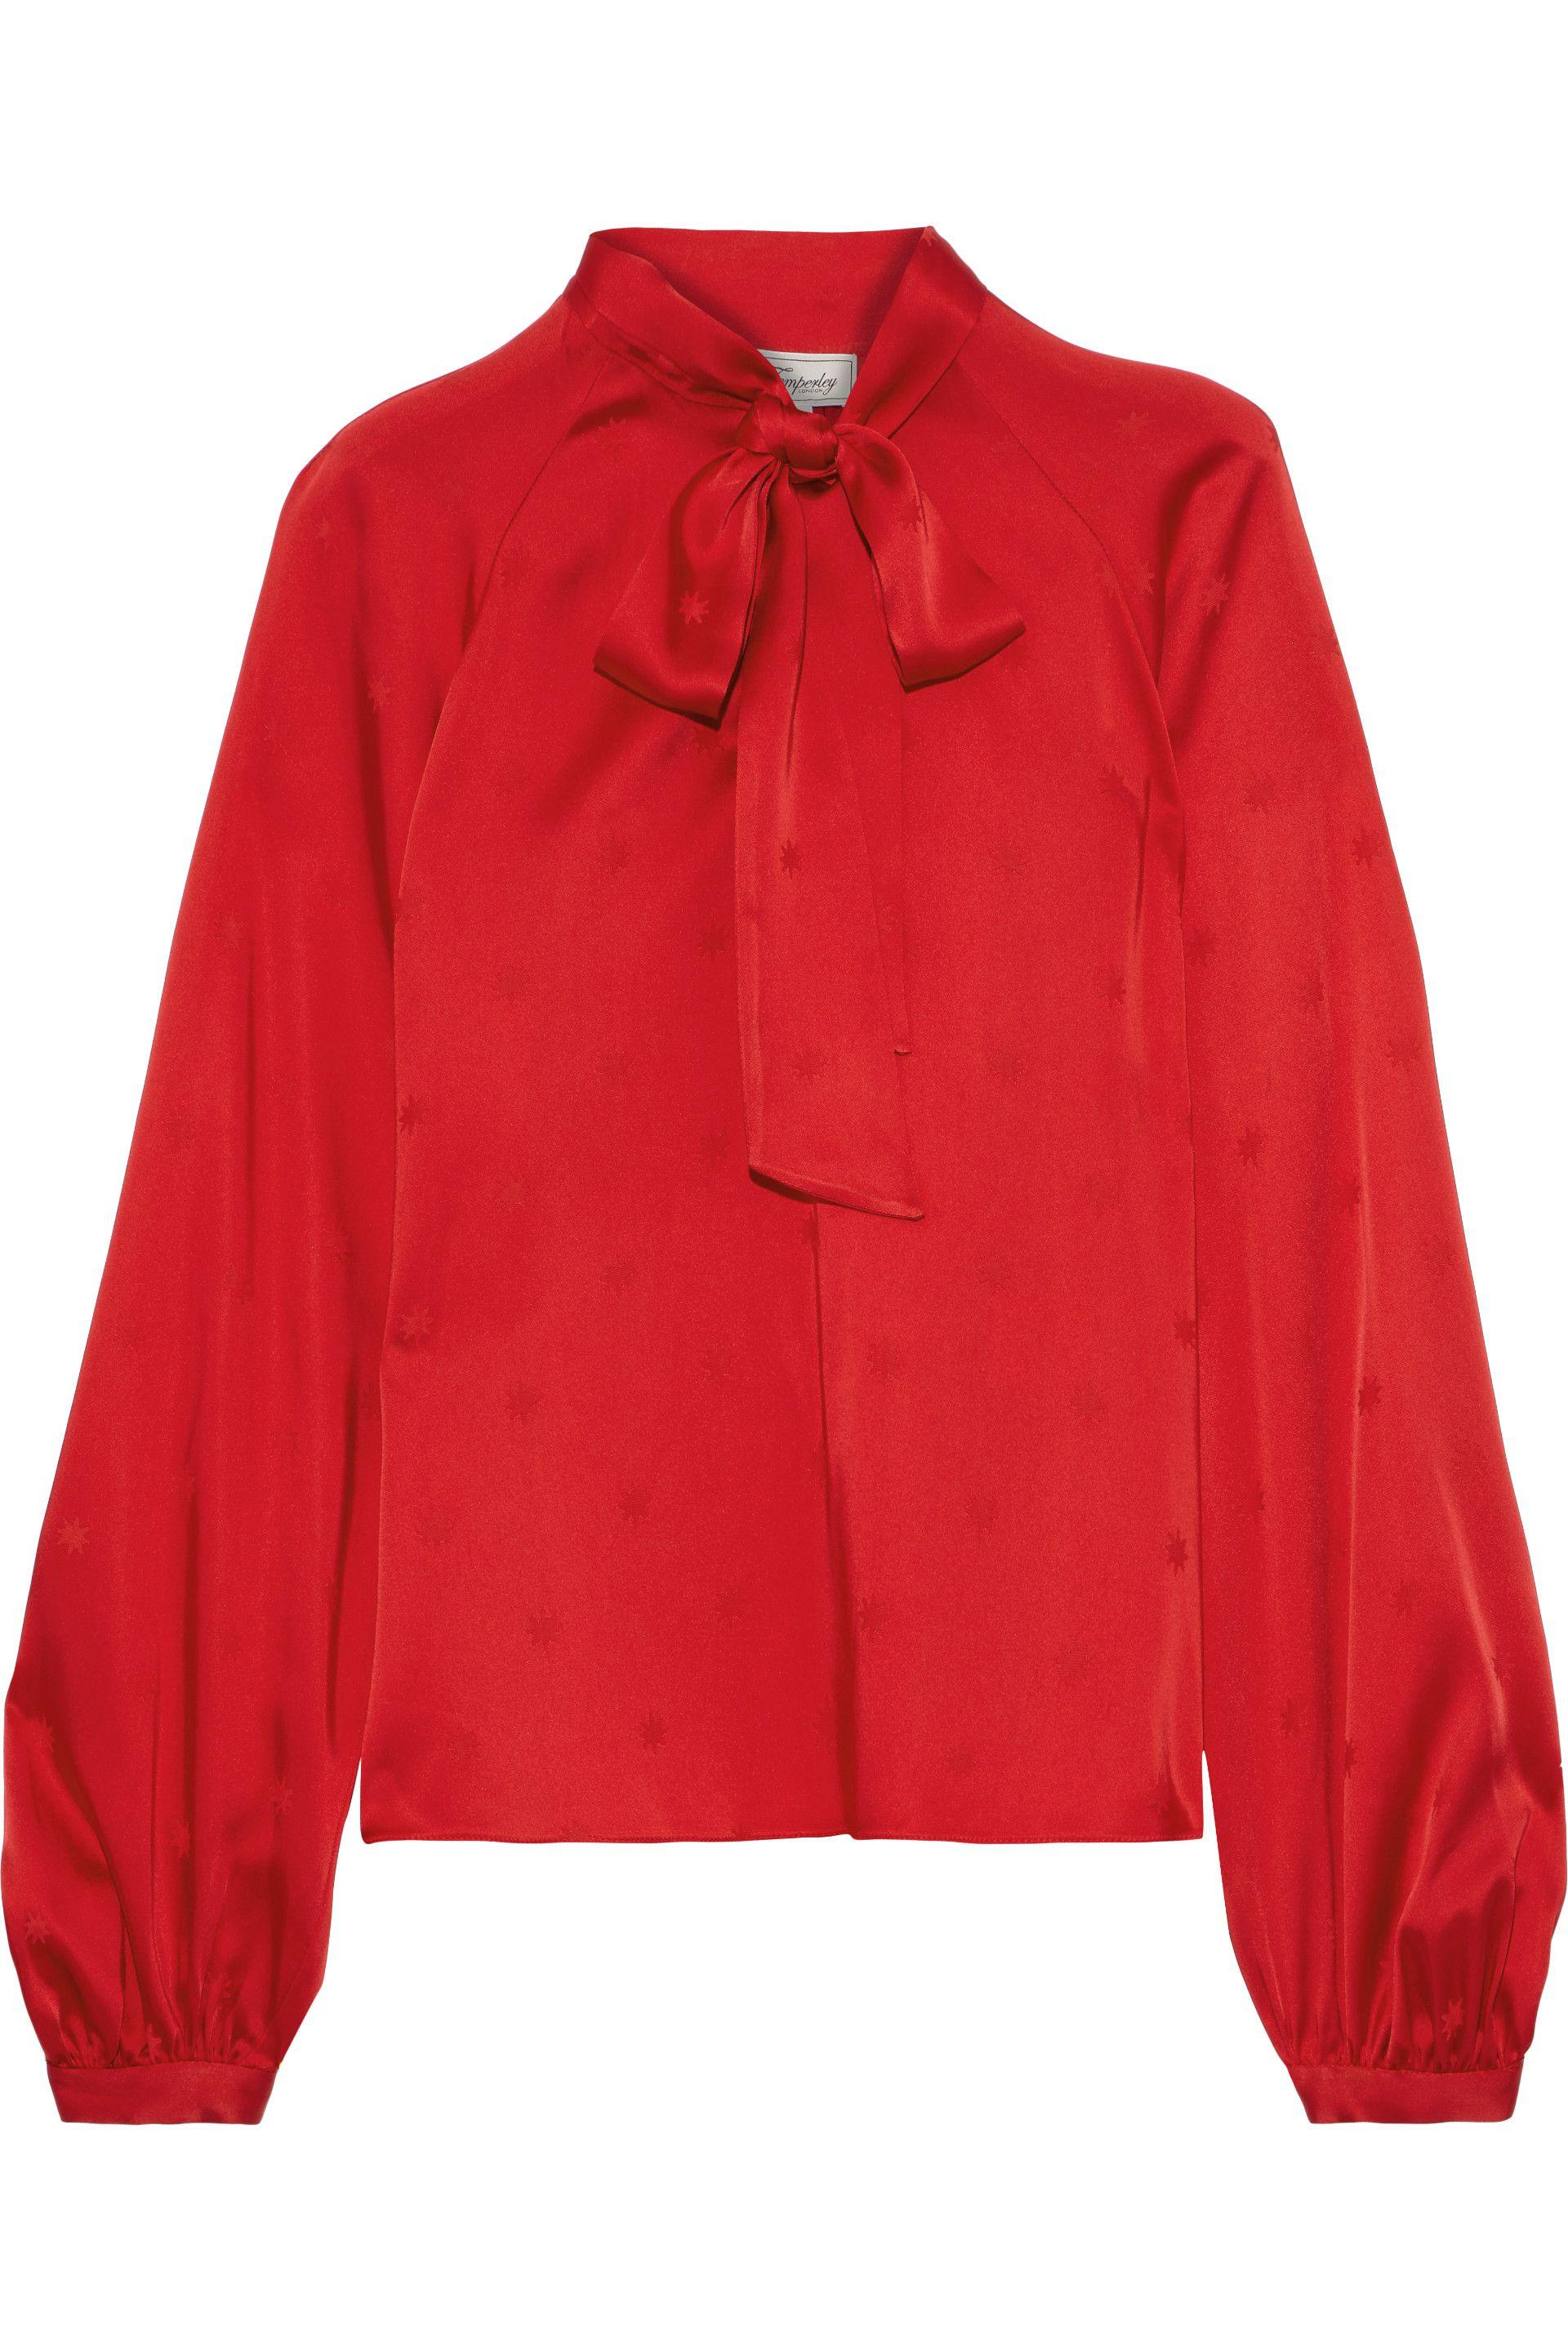 28f8bad1e39880 Temperley London. Women's Woman Betty Pussy-bow Satin-jacquard Blouse Red